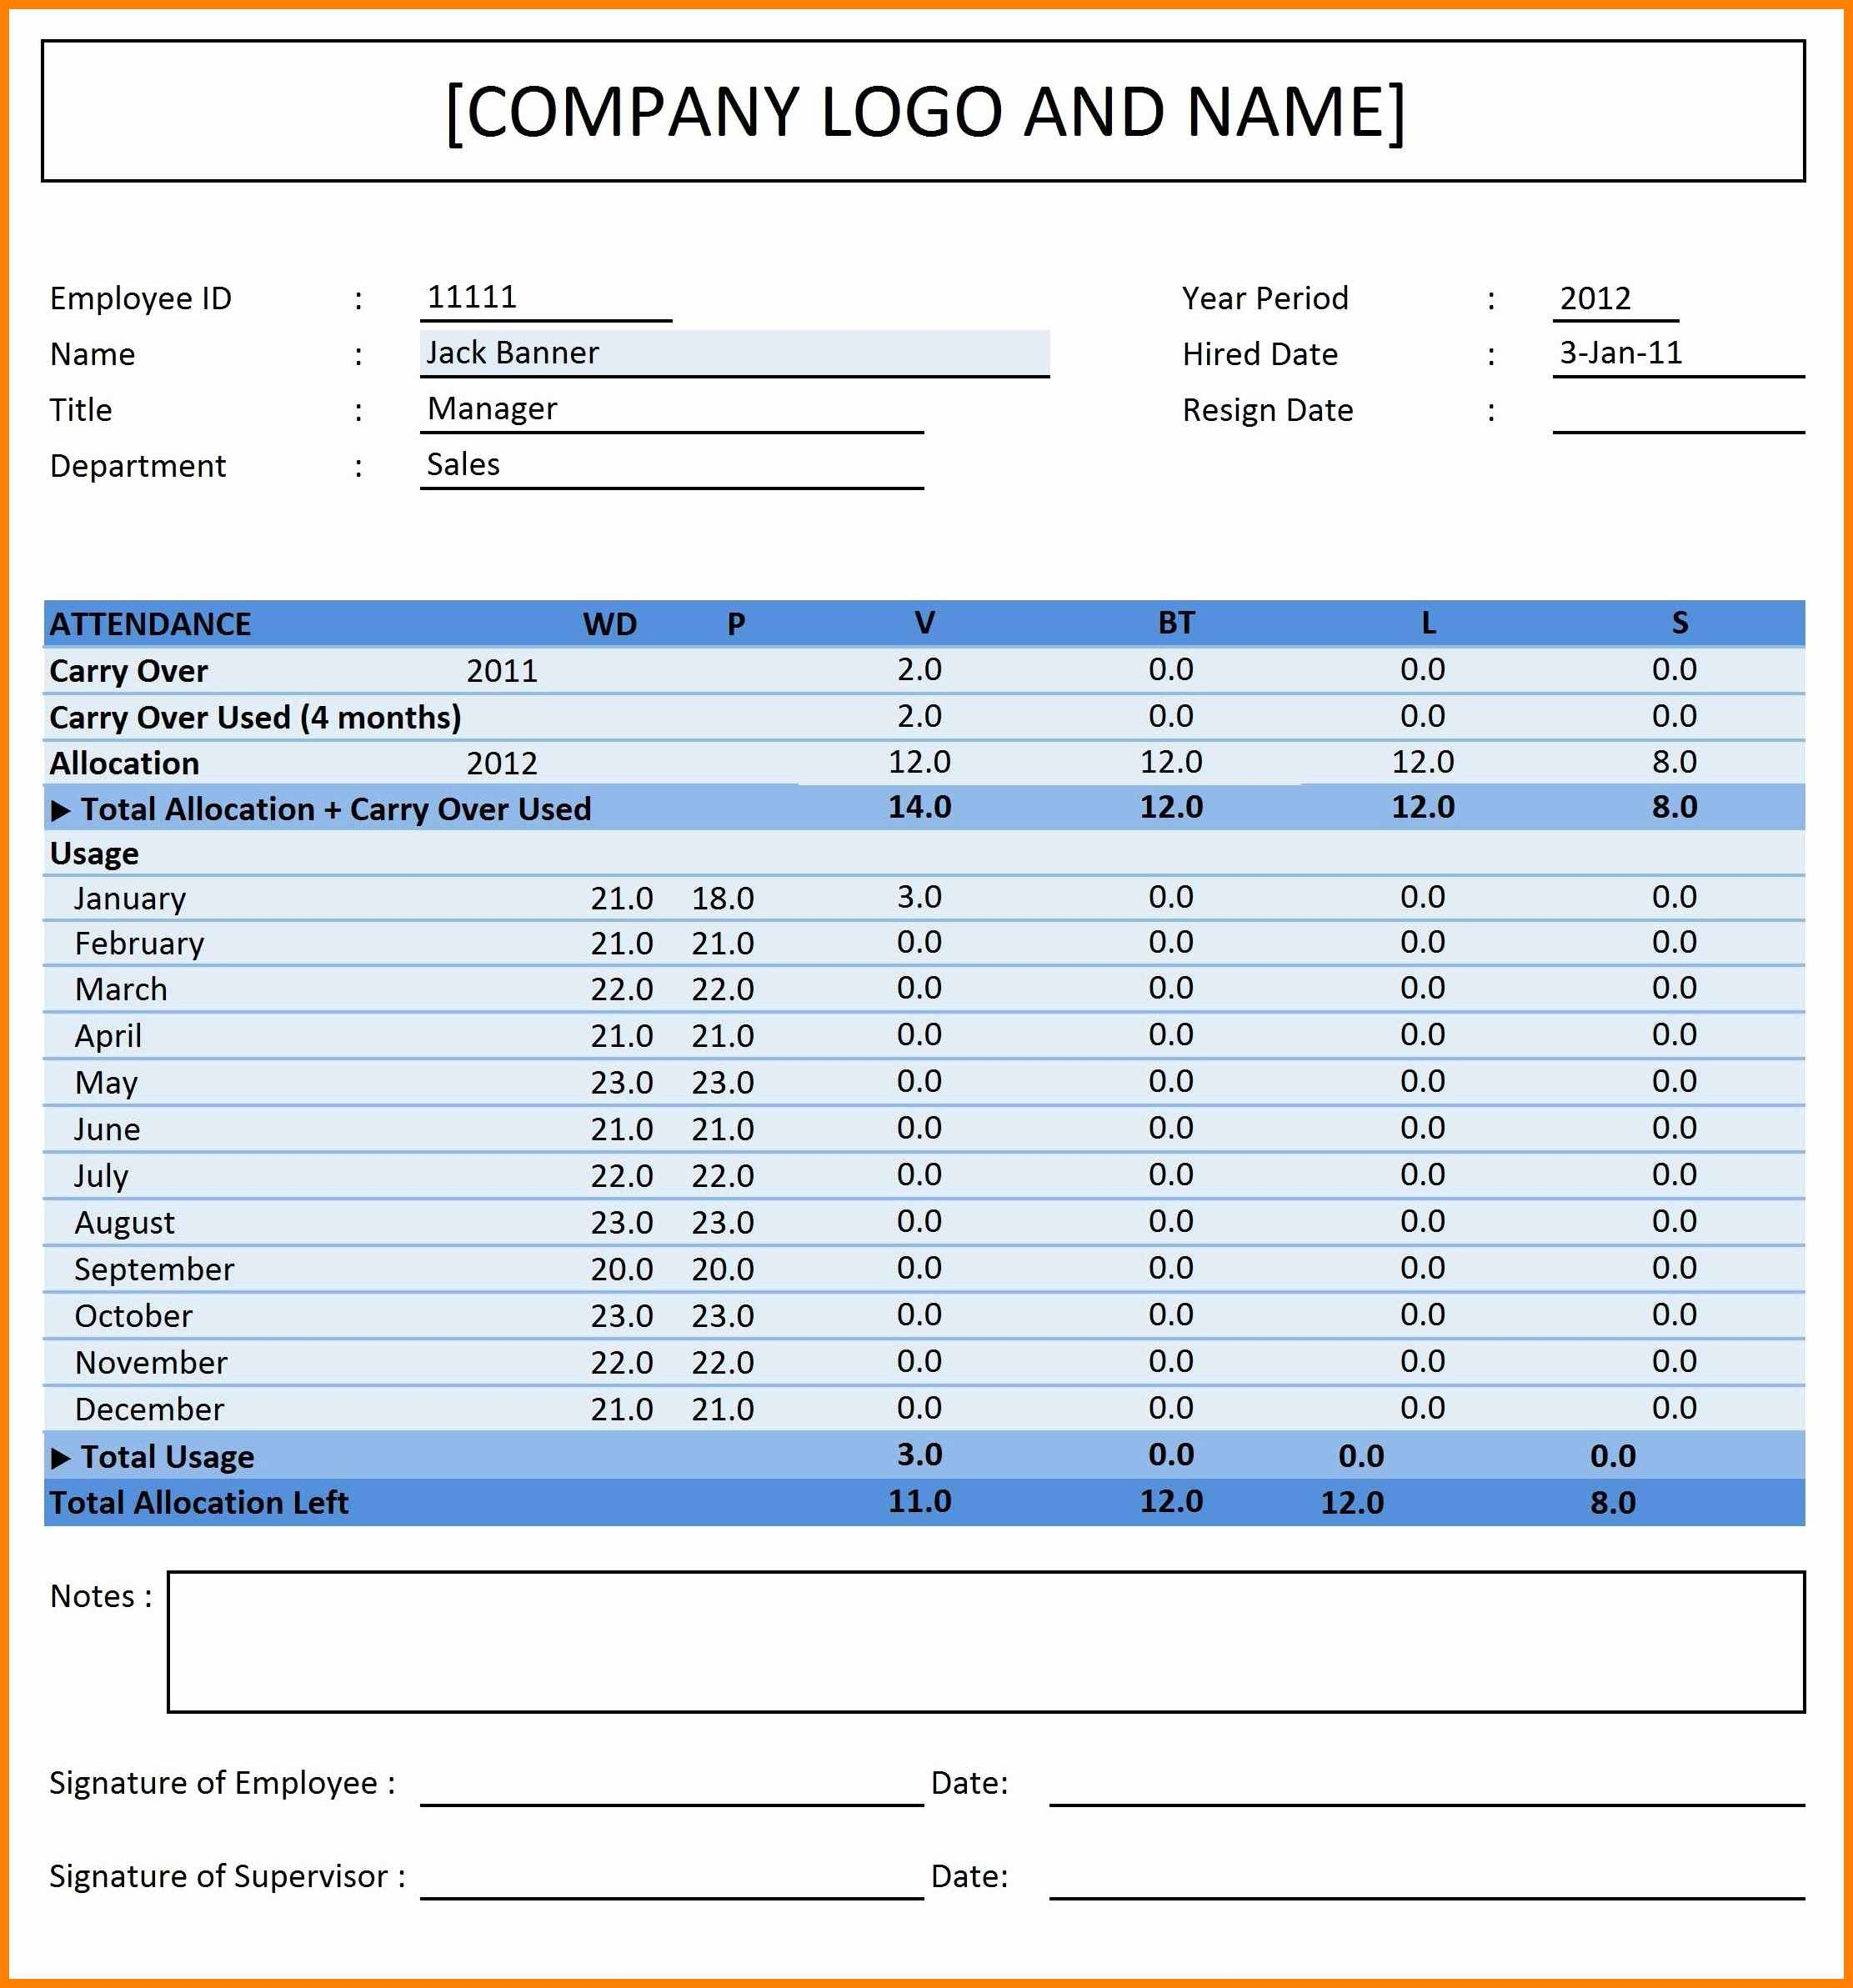 Attendance Tracking Spreadsheet pertaining to 5+ Employee Attendance Tracking Spreadsheet  Credit Spreadsheet